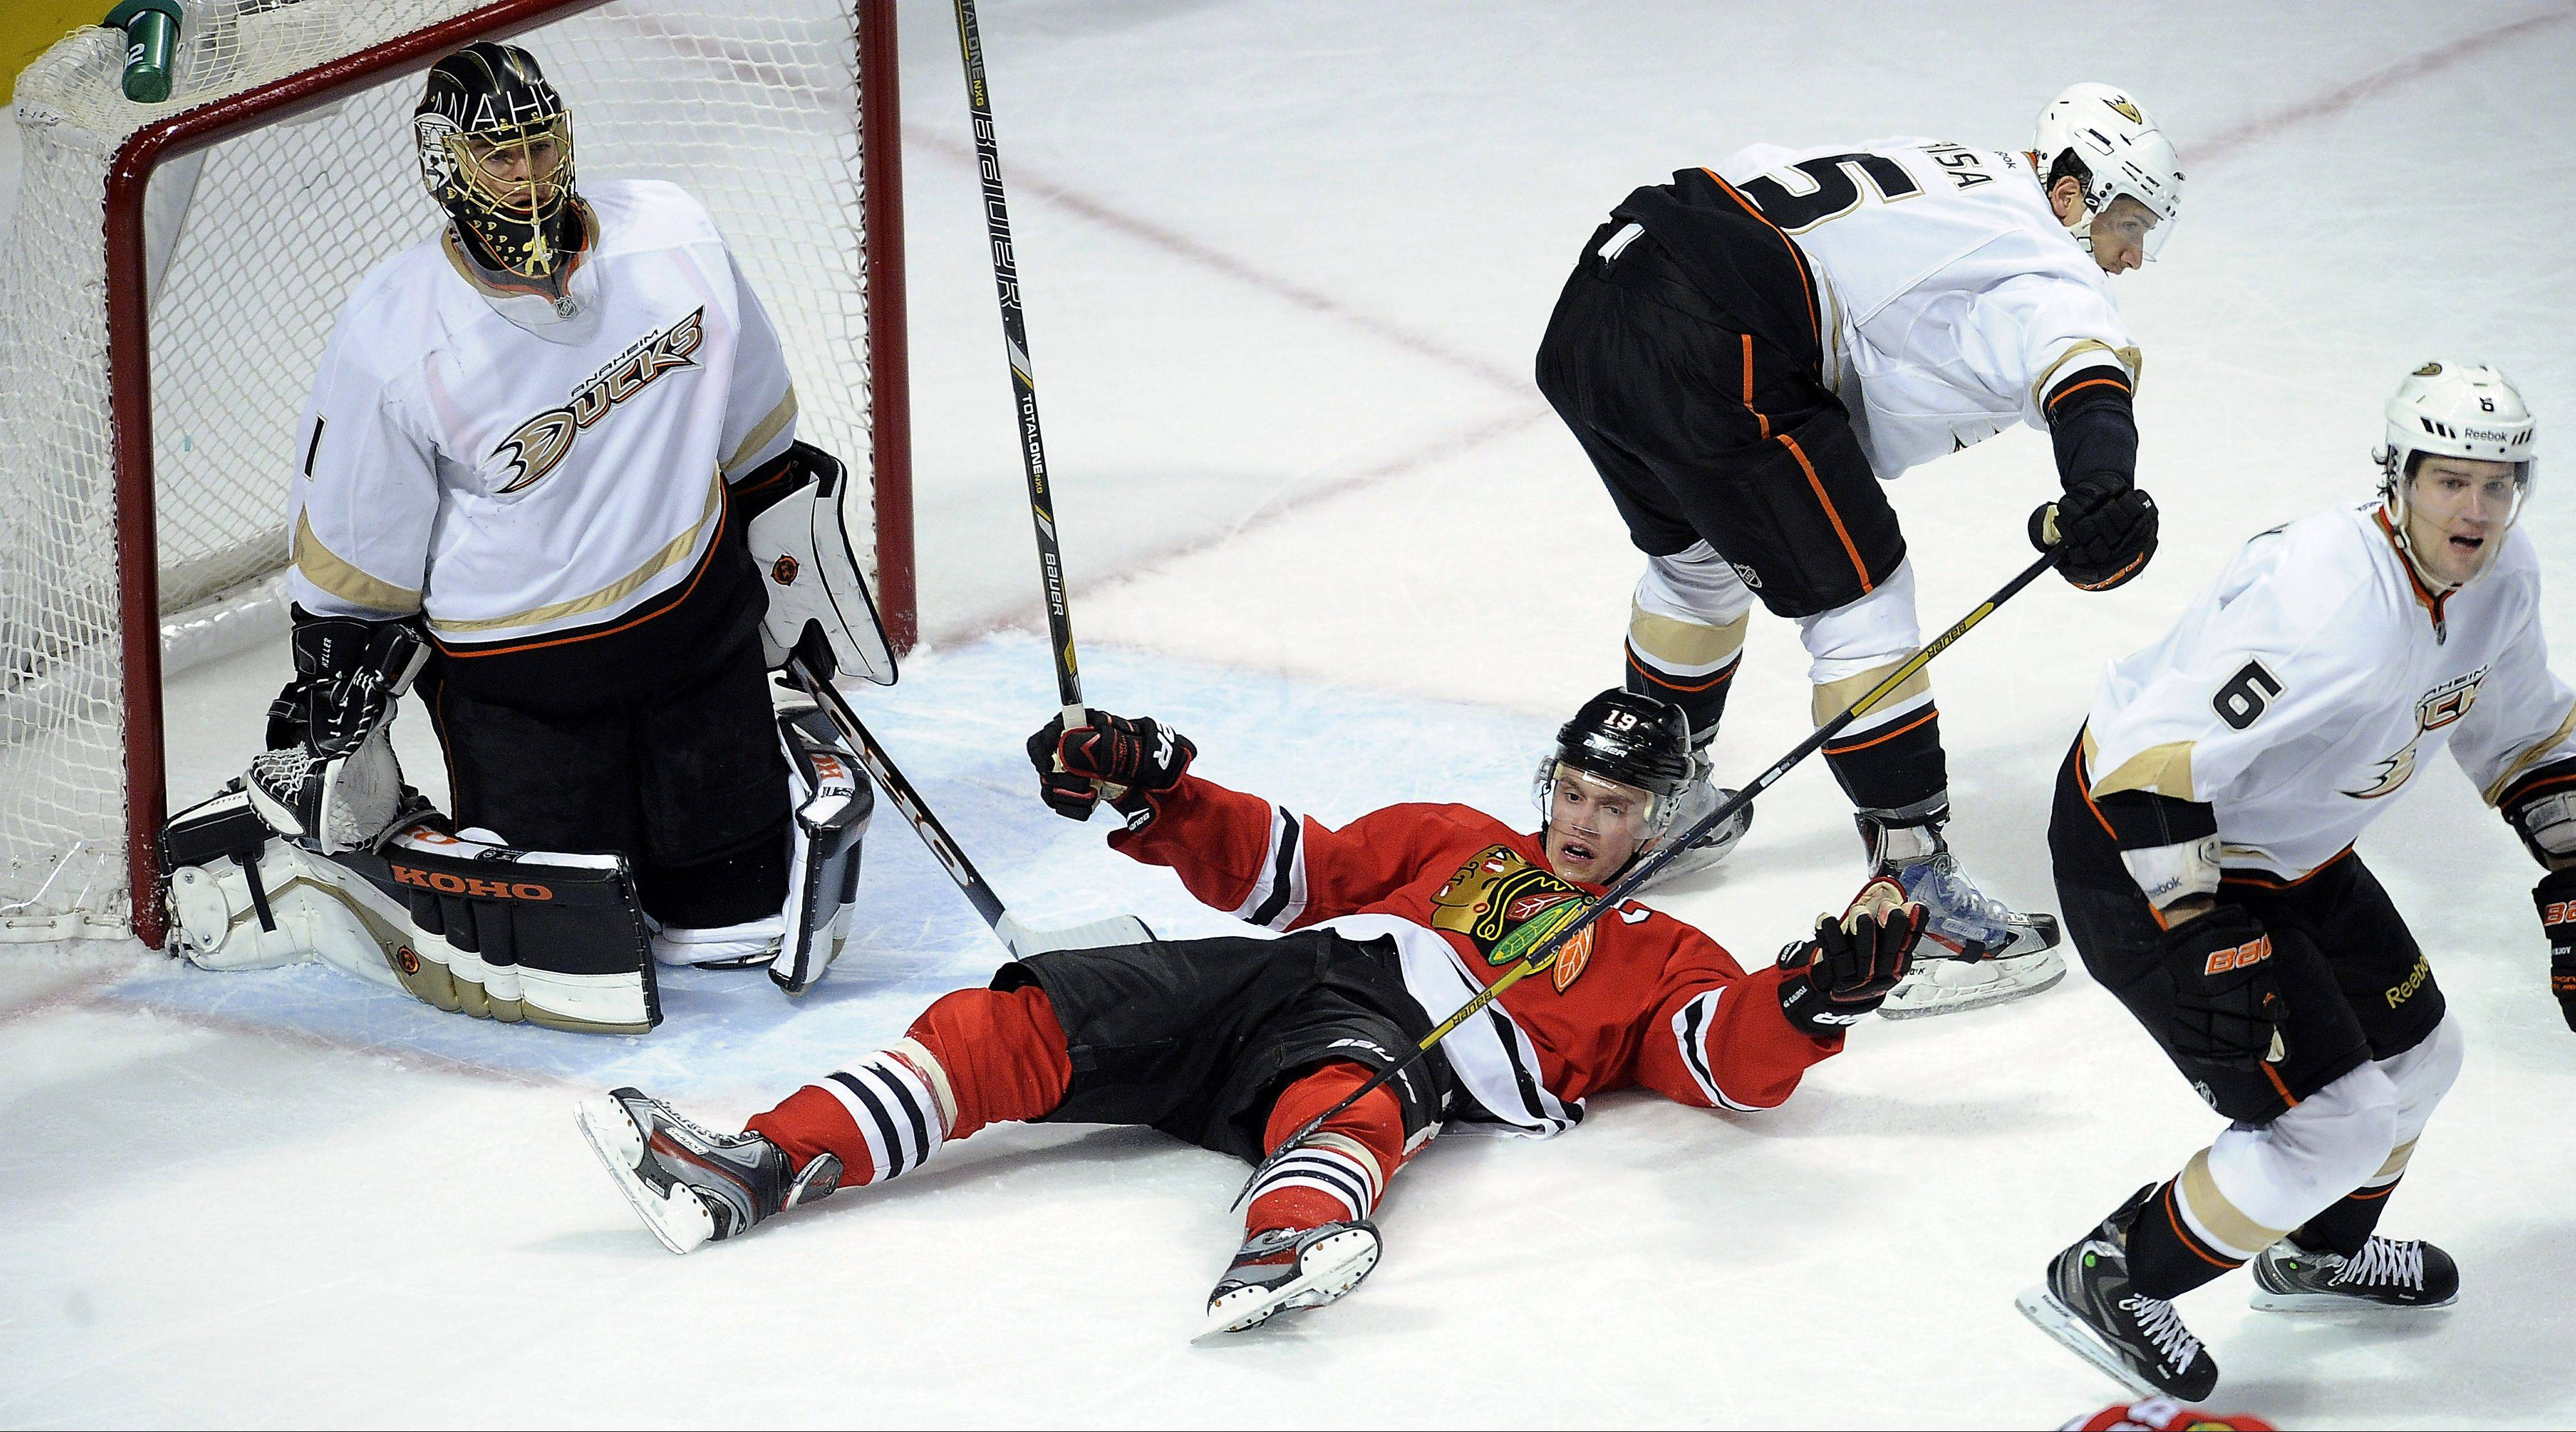 Jonathan Toews goes down under heavy pressure from Anaheim after he tried to score in the first period on Friday.